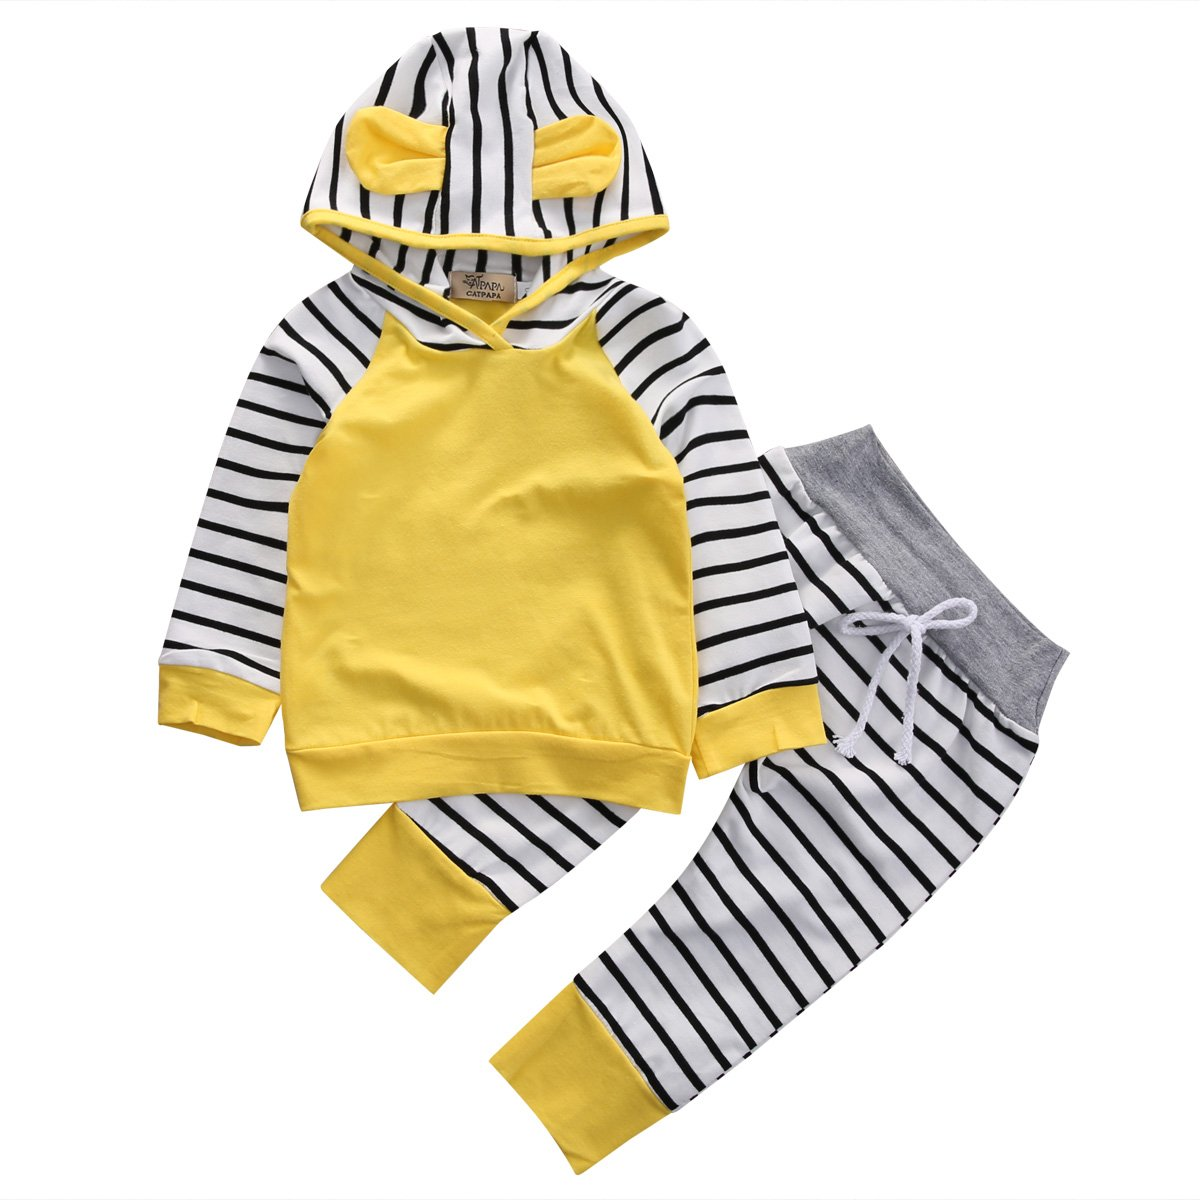 honeys Infant Baby Boy Girl 2pcs Set Cute Hat Long Sleeve Hoodie+Striped Pants Outfit